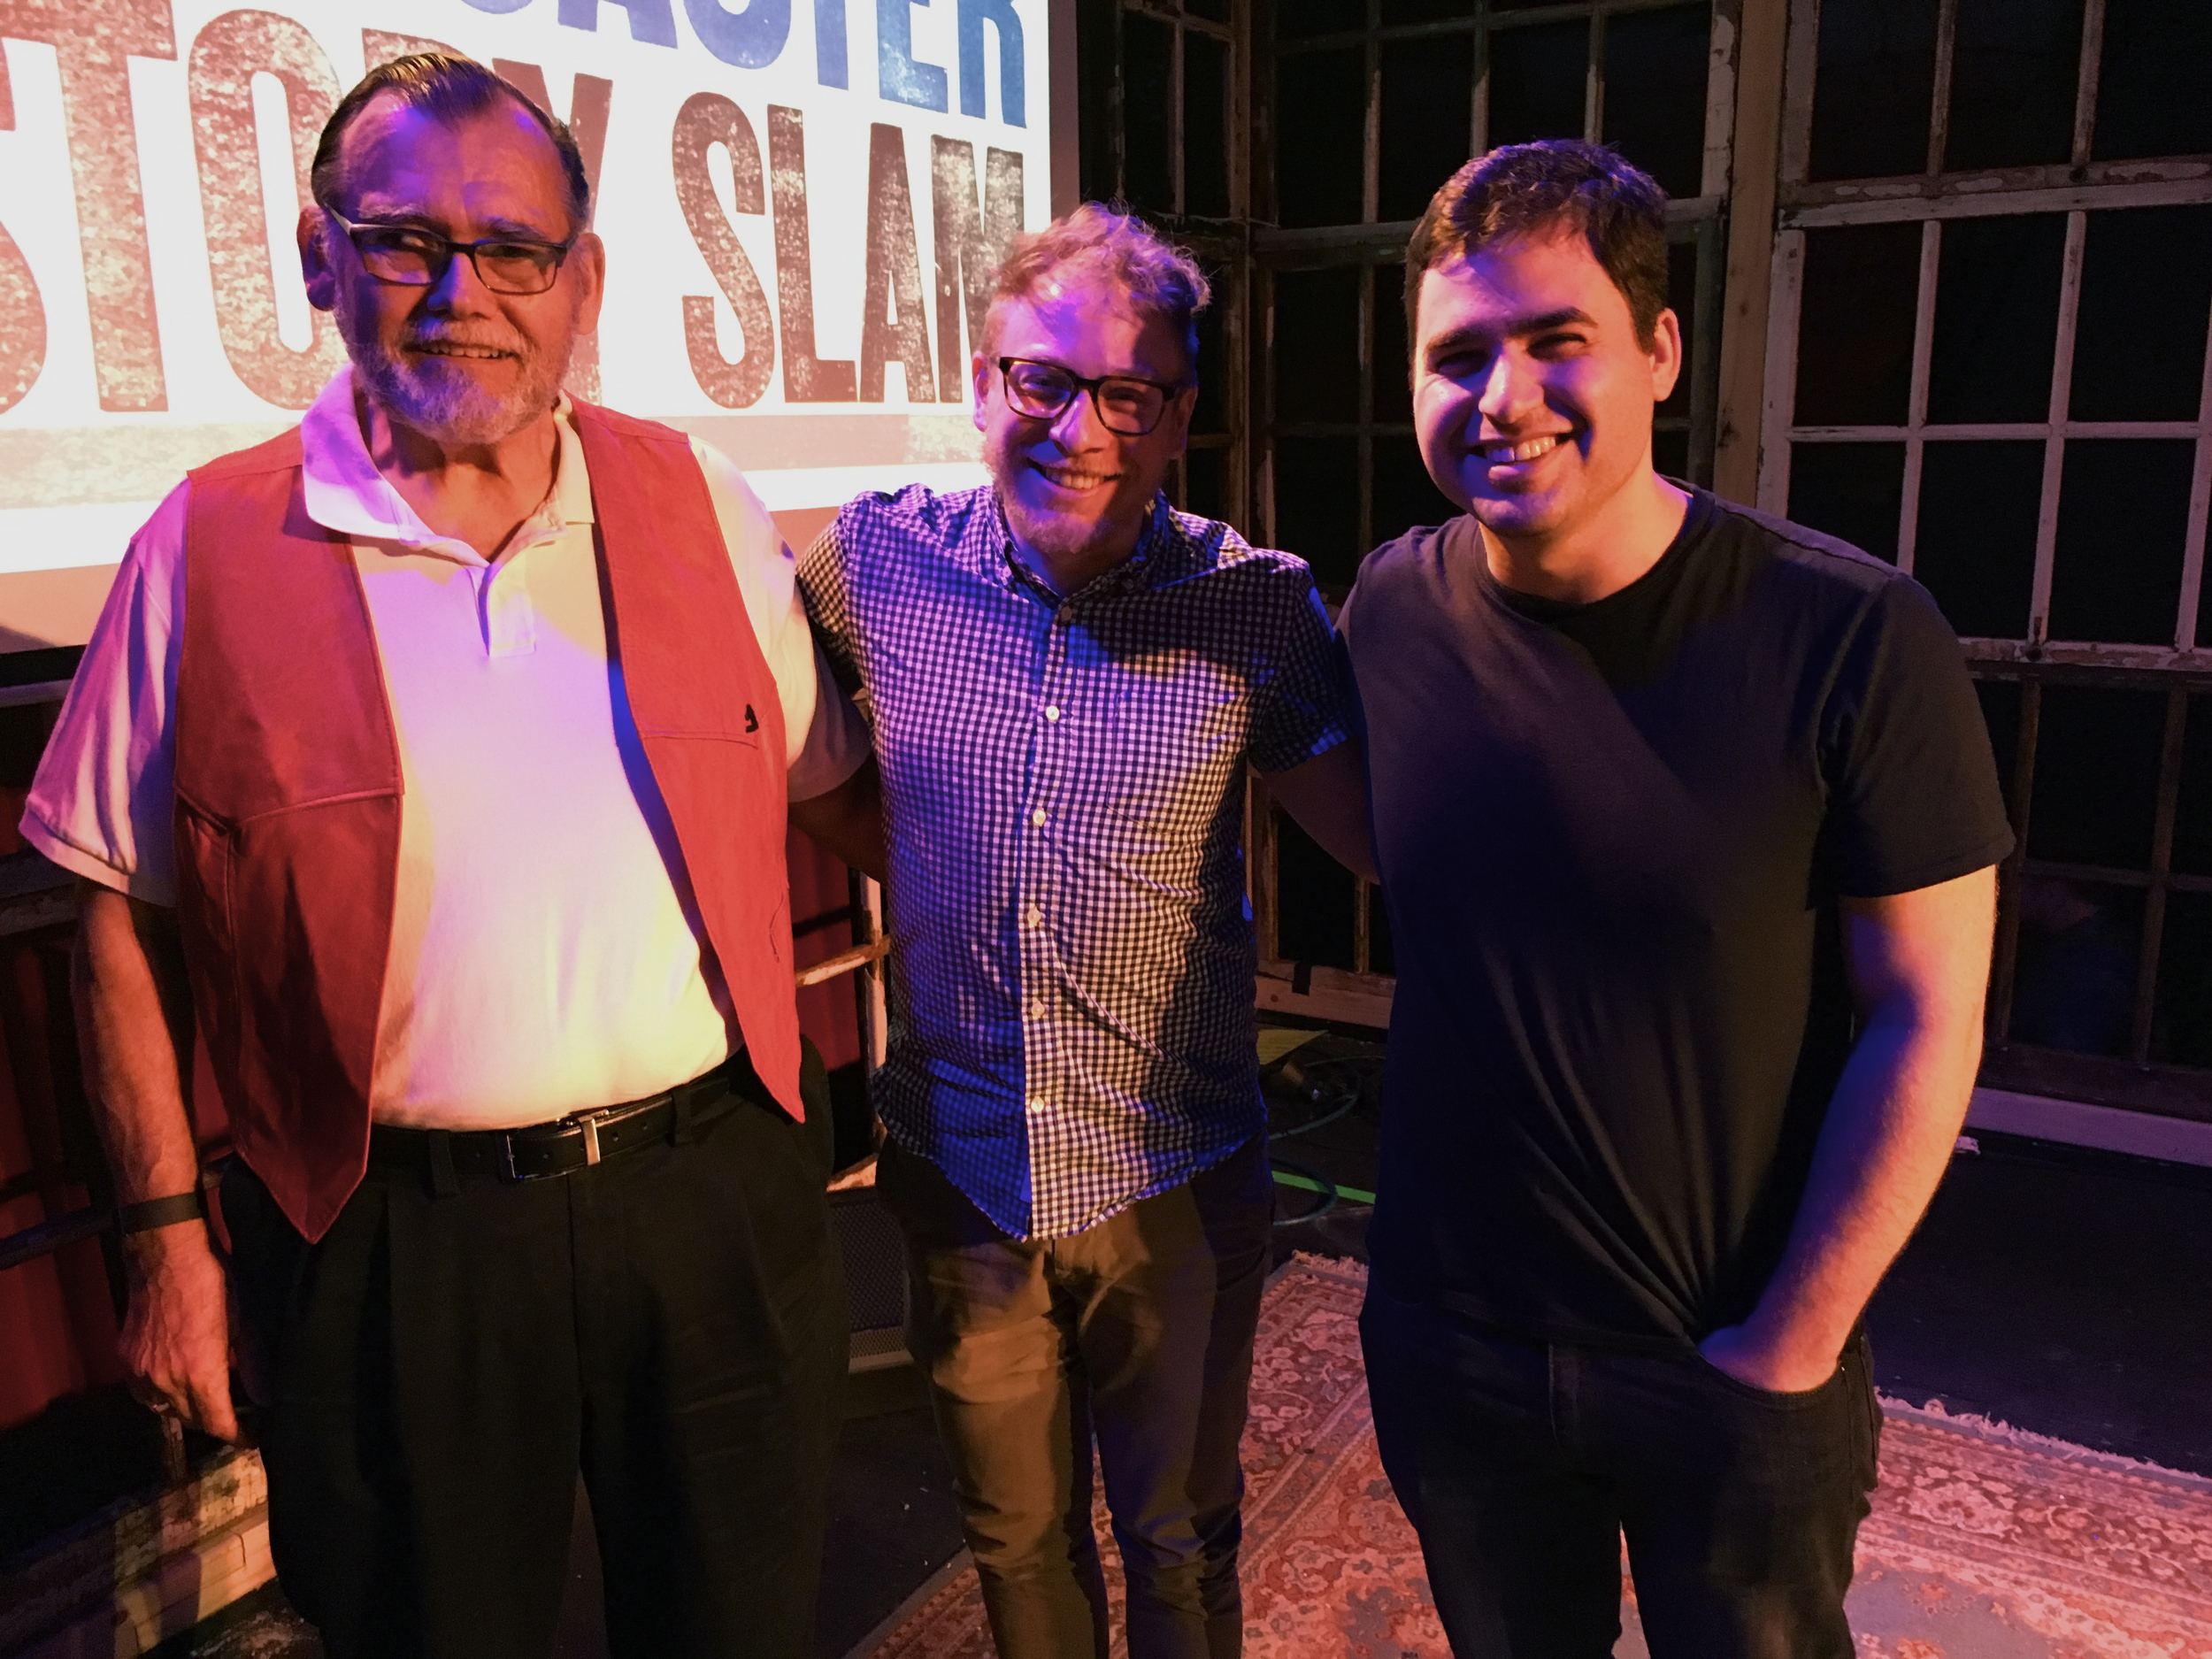 Winner Aaron Spangler (center) poses with John Strogus (left), and David Lasky (right)